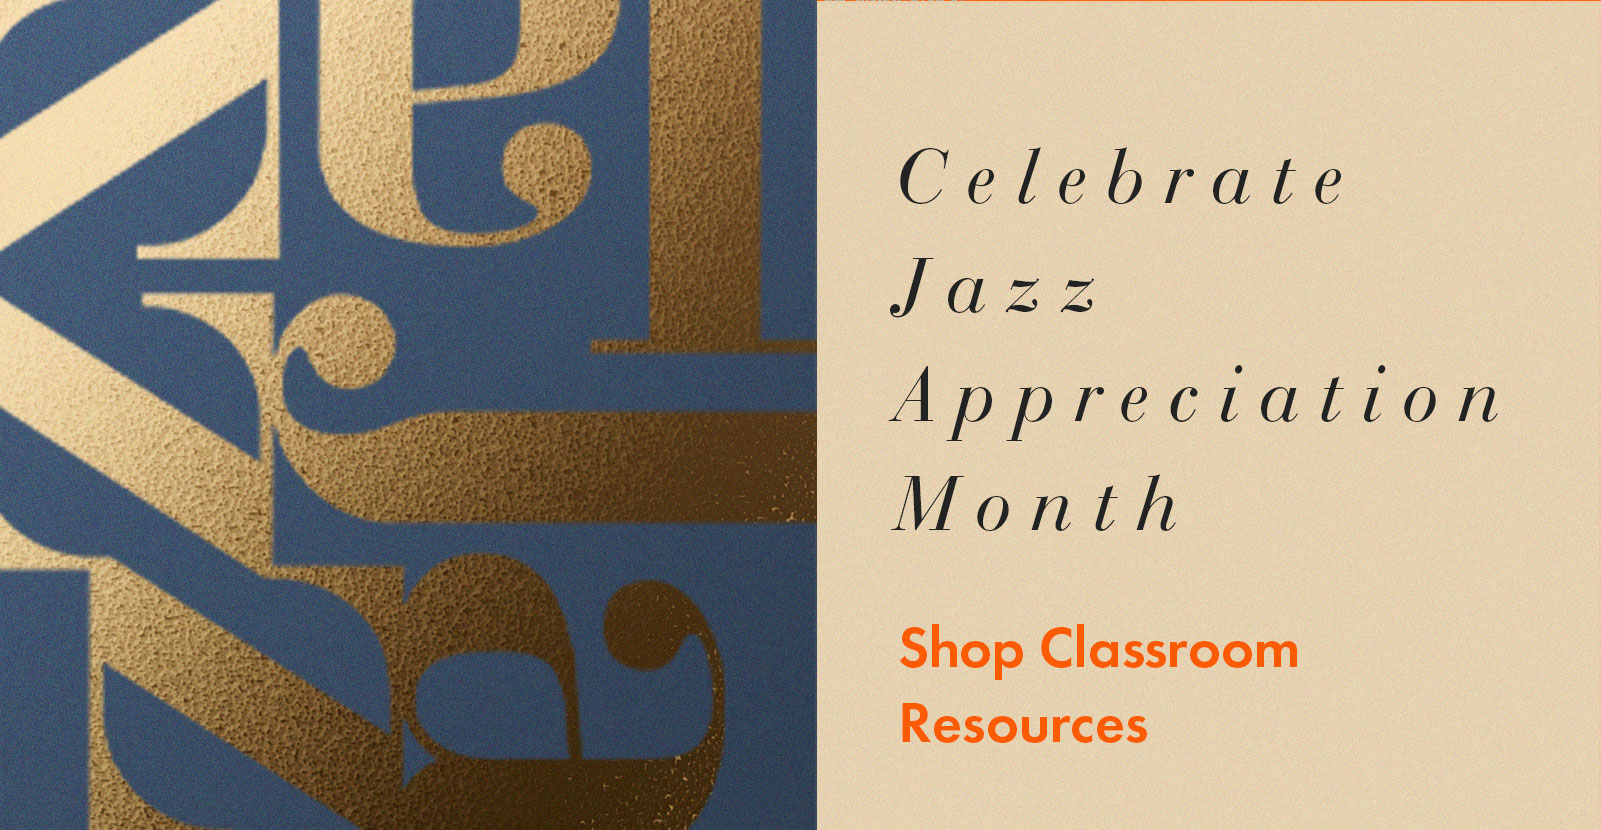 Shop general music classroom resources for Jazz Appreciation Month.